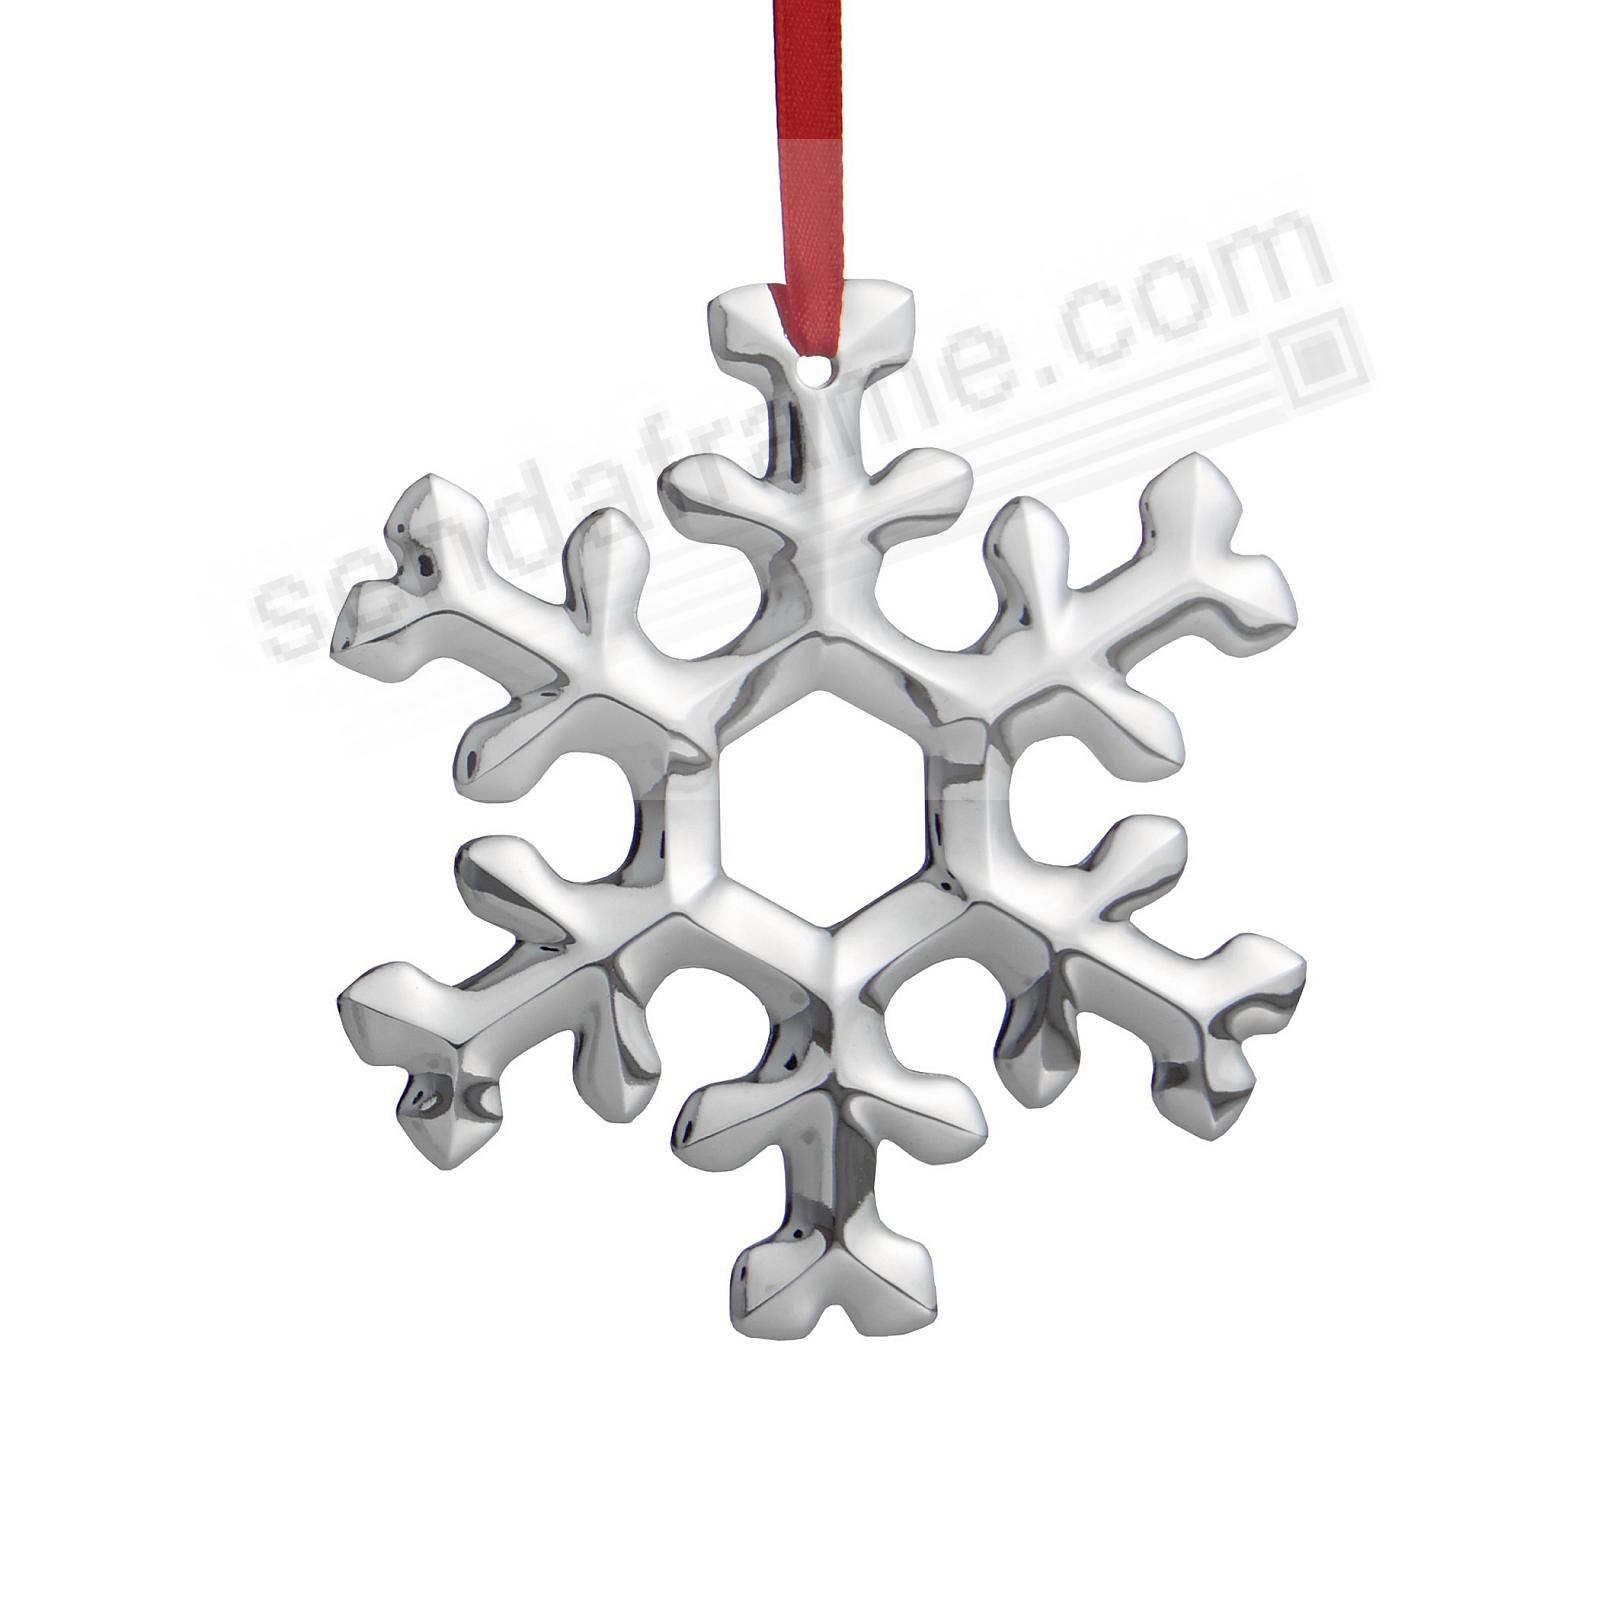 SNOWFLAKE ORNAMENT for 2020 by Nambe®